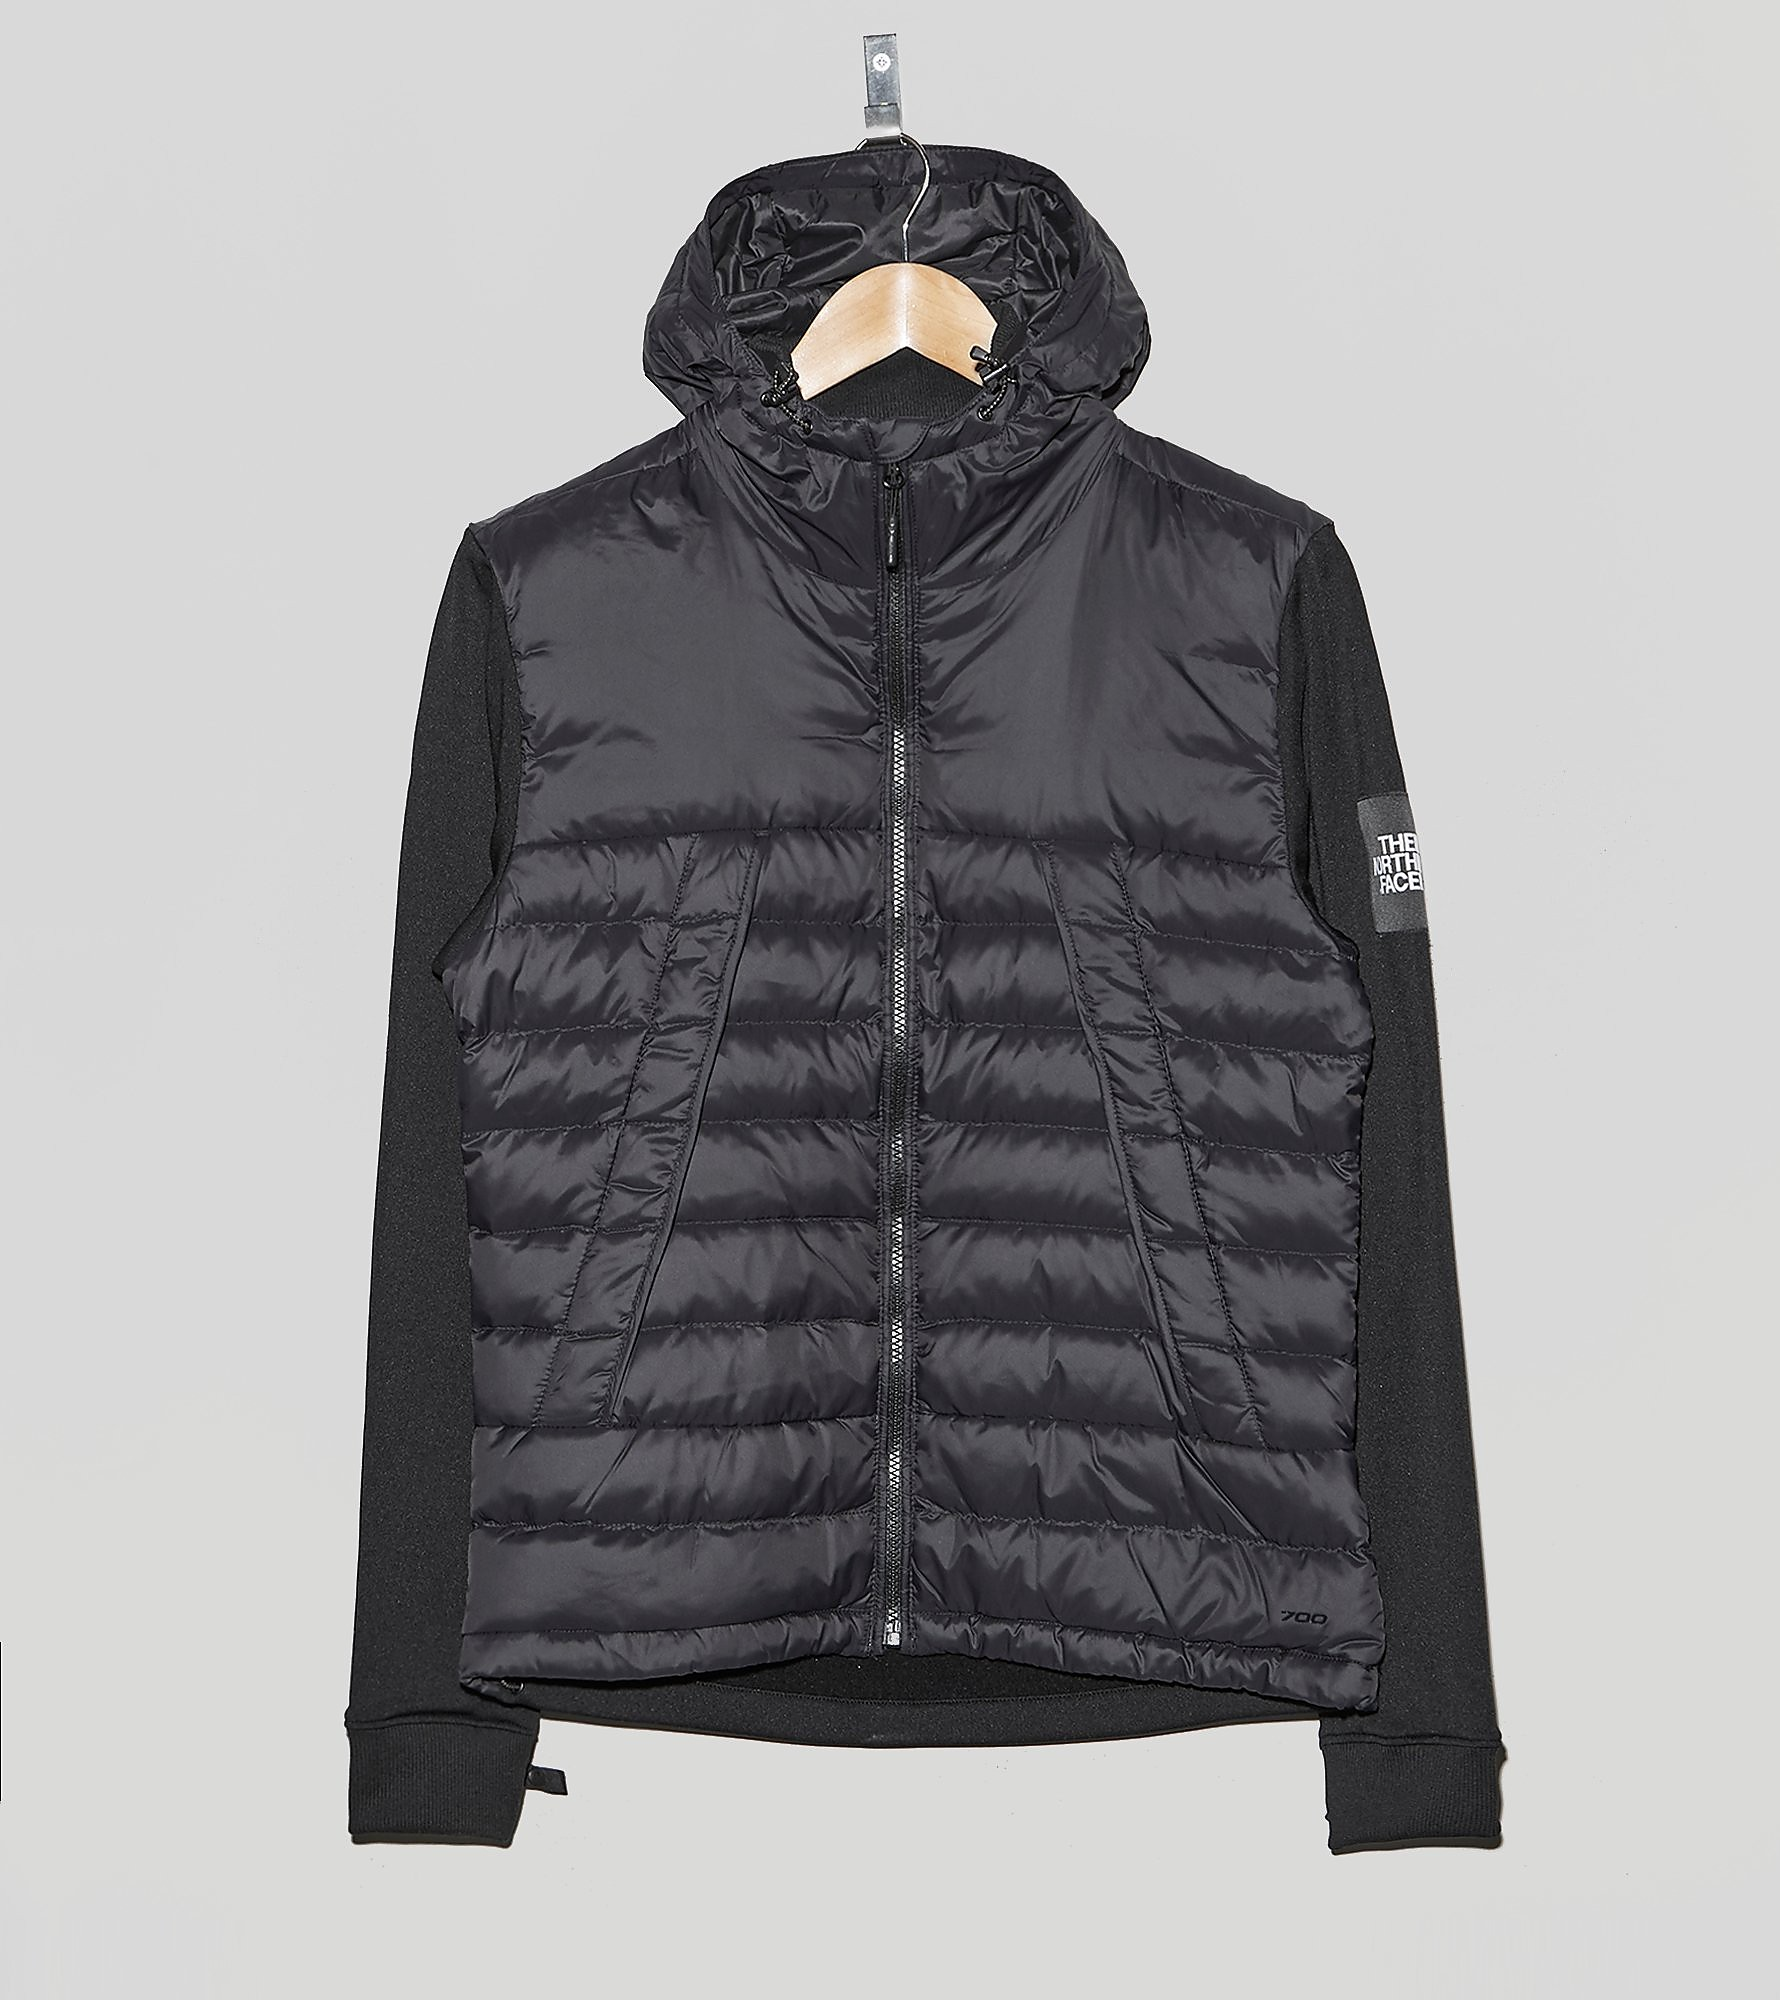 The North Face Black Label Padded Mountain Jacket